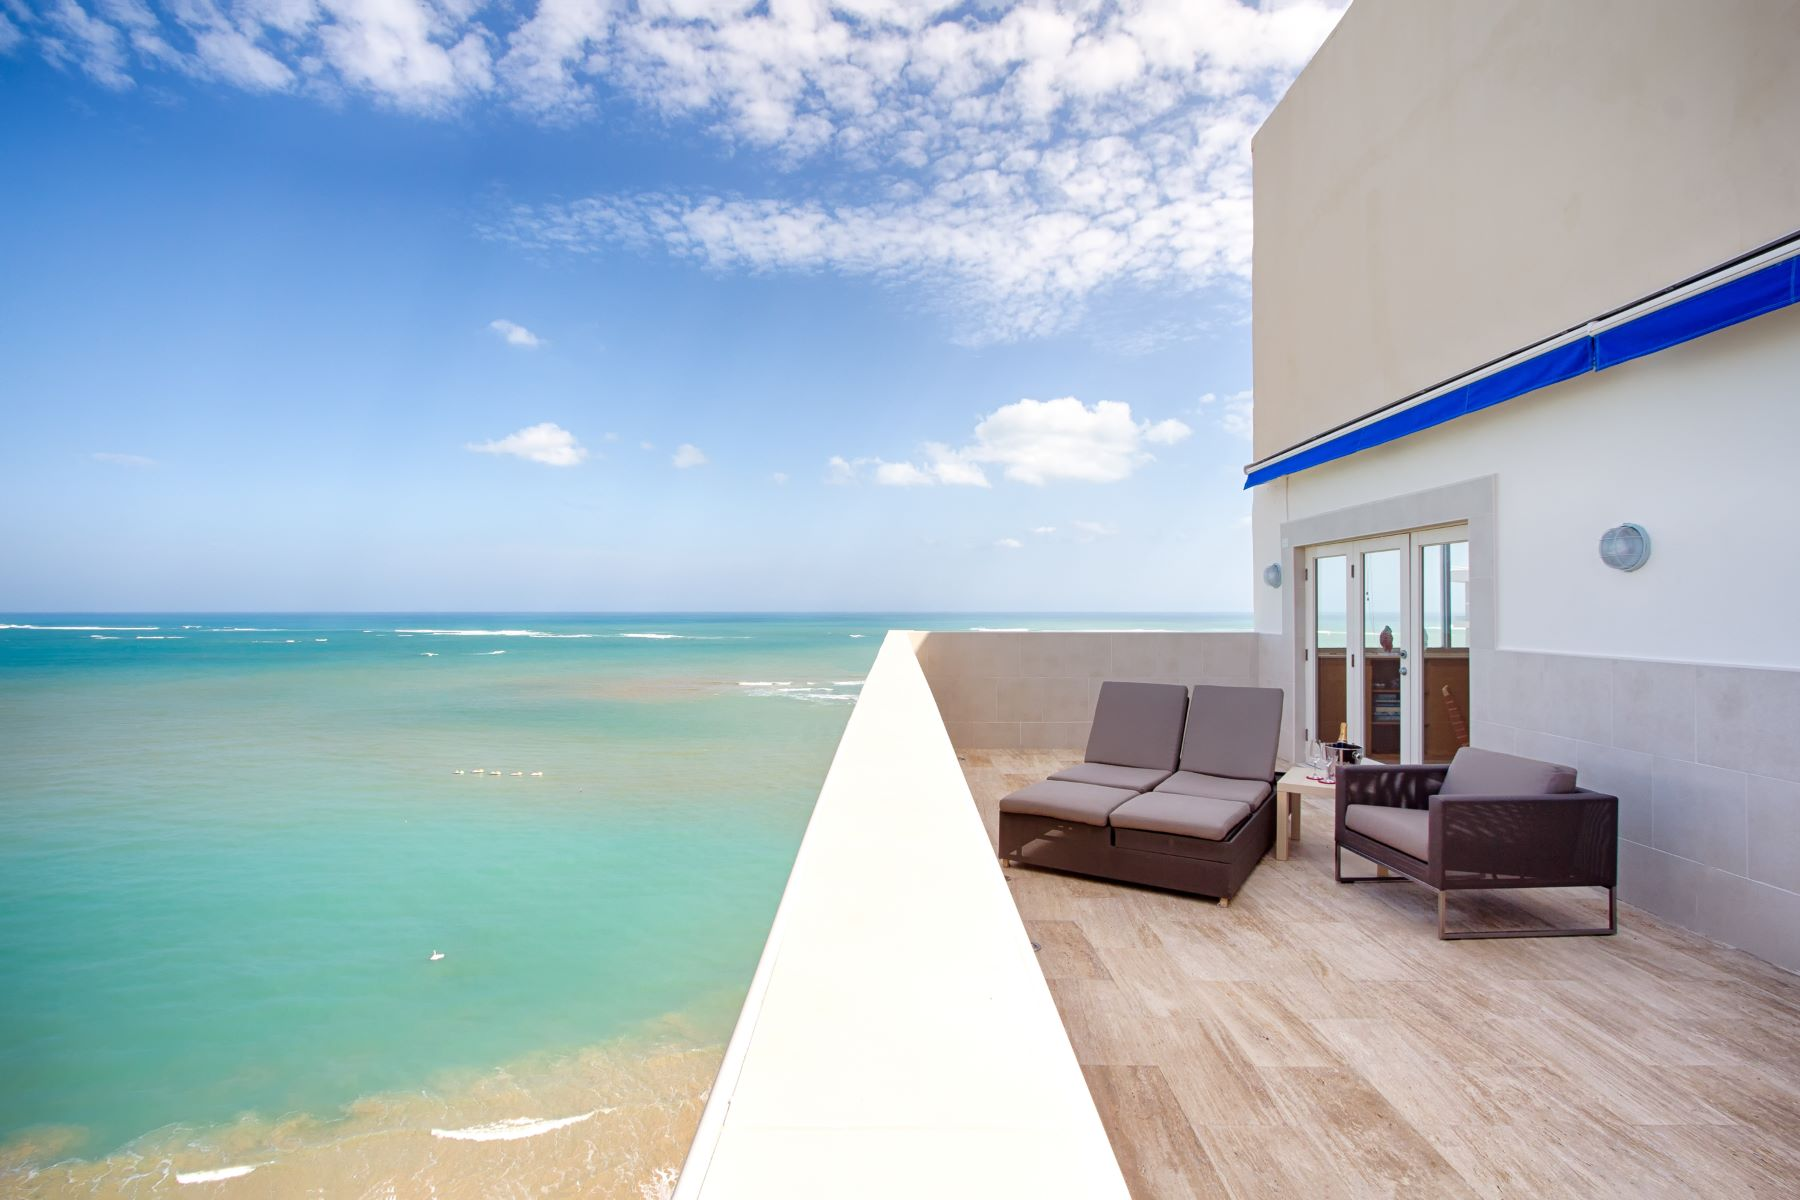 Doppio per Vendita alle ore The Ultimate Beach Penthouse 6165 Isla Verde Ave. PH Carolina, Puerto Rico 00979 Porto Rico